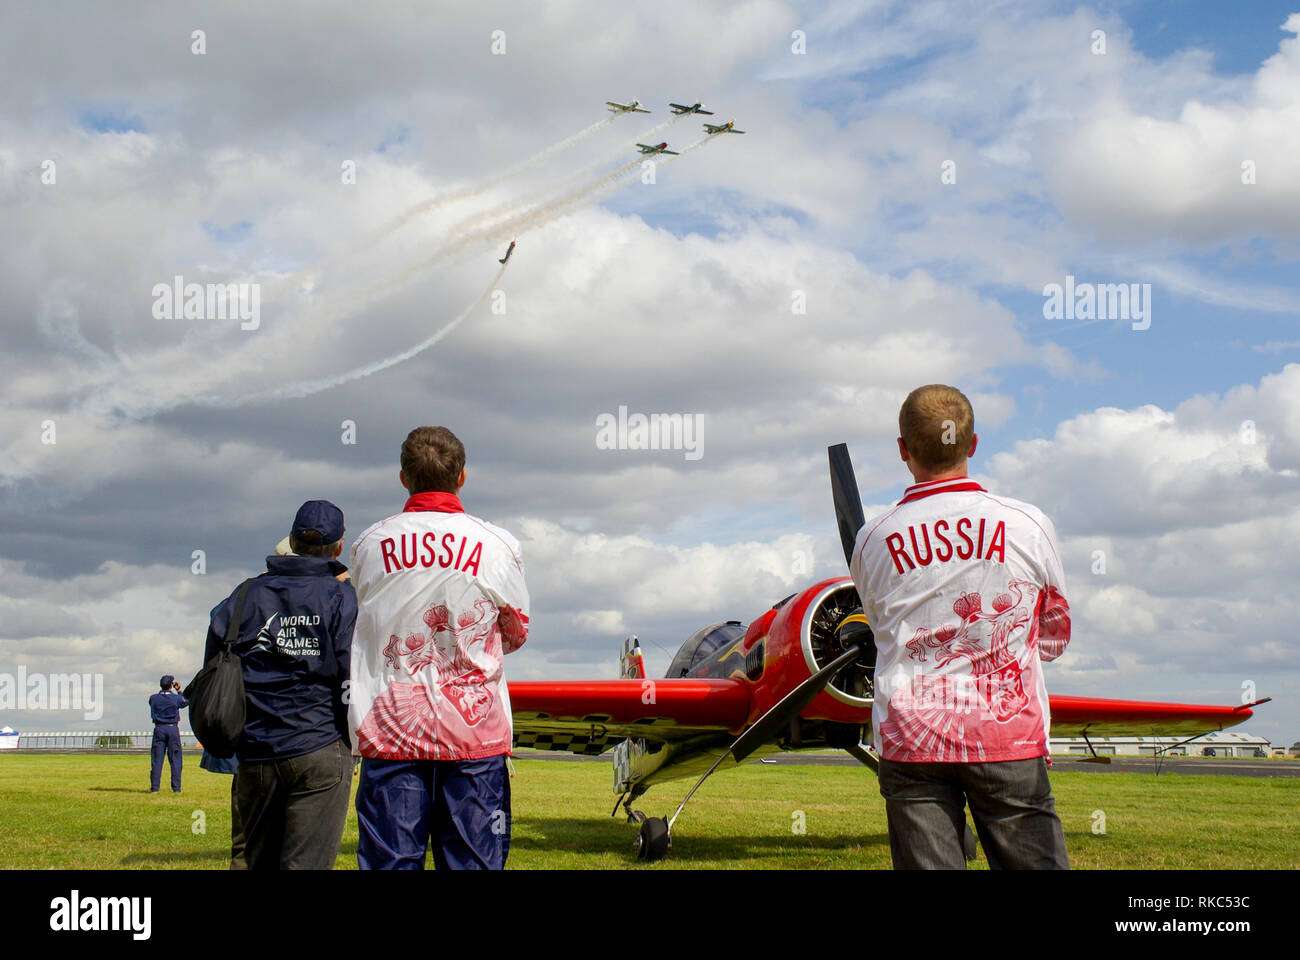 Russian pilots at the World Aerobatic Championships at Silverstone, UK, watching flying display. Sukhoi Su-26 aerobatic plane. Space for copy - Stock Image